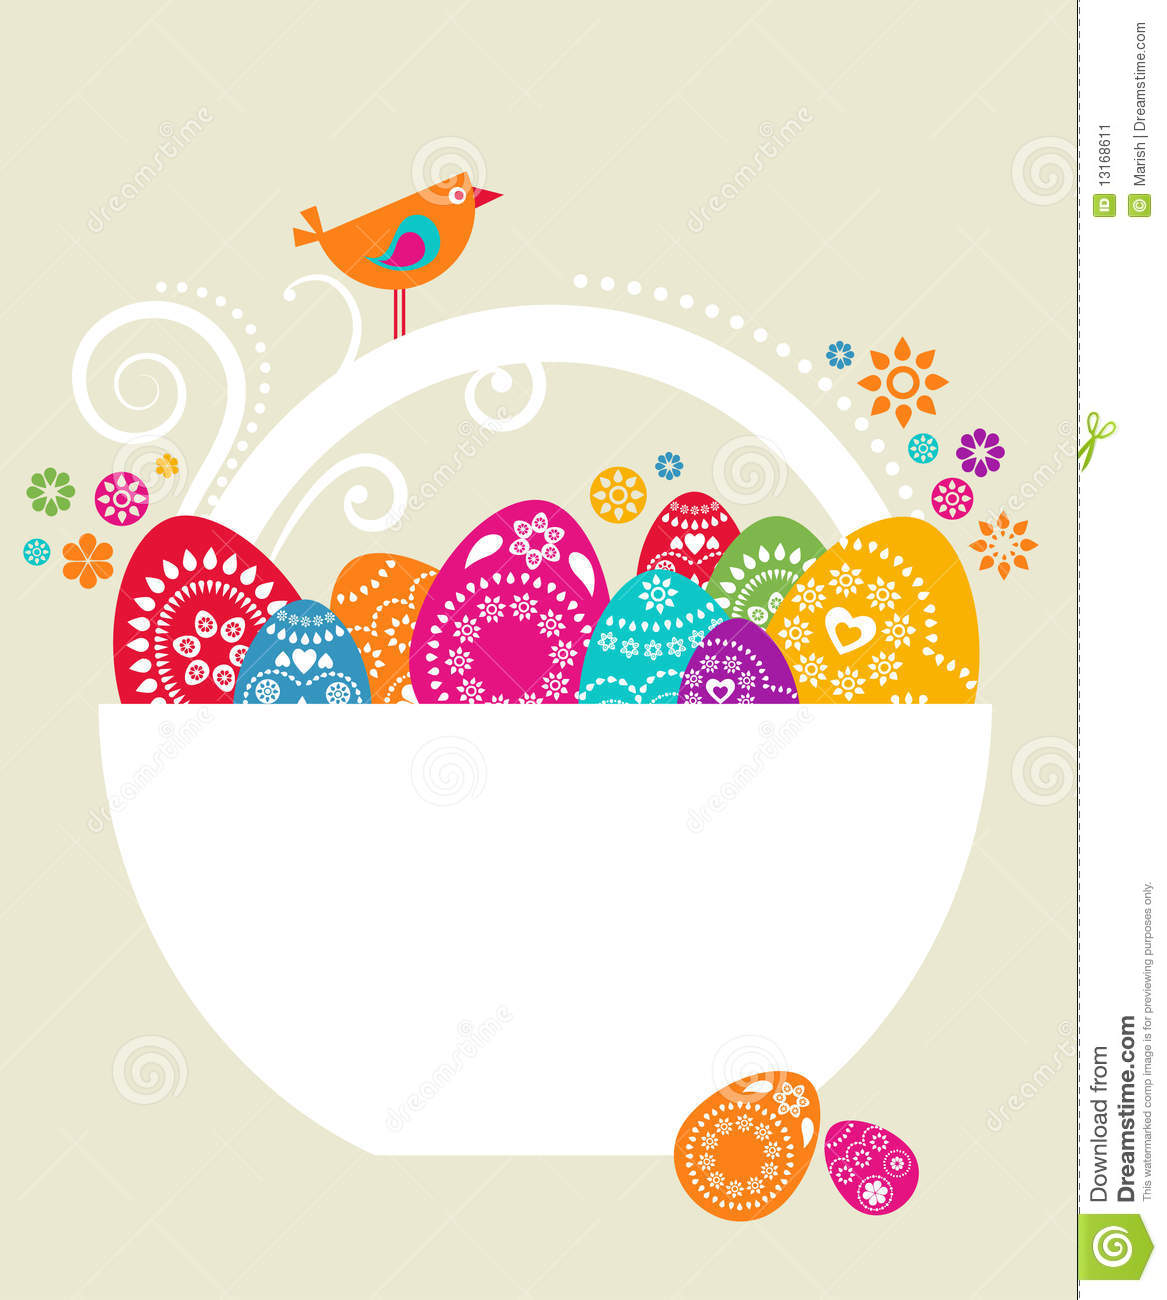 Easter card template 9 stock vector illustration of animals download easter card template 9 stock vector illustration of animals 13168611 m4hsunfo